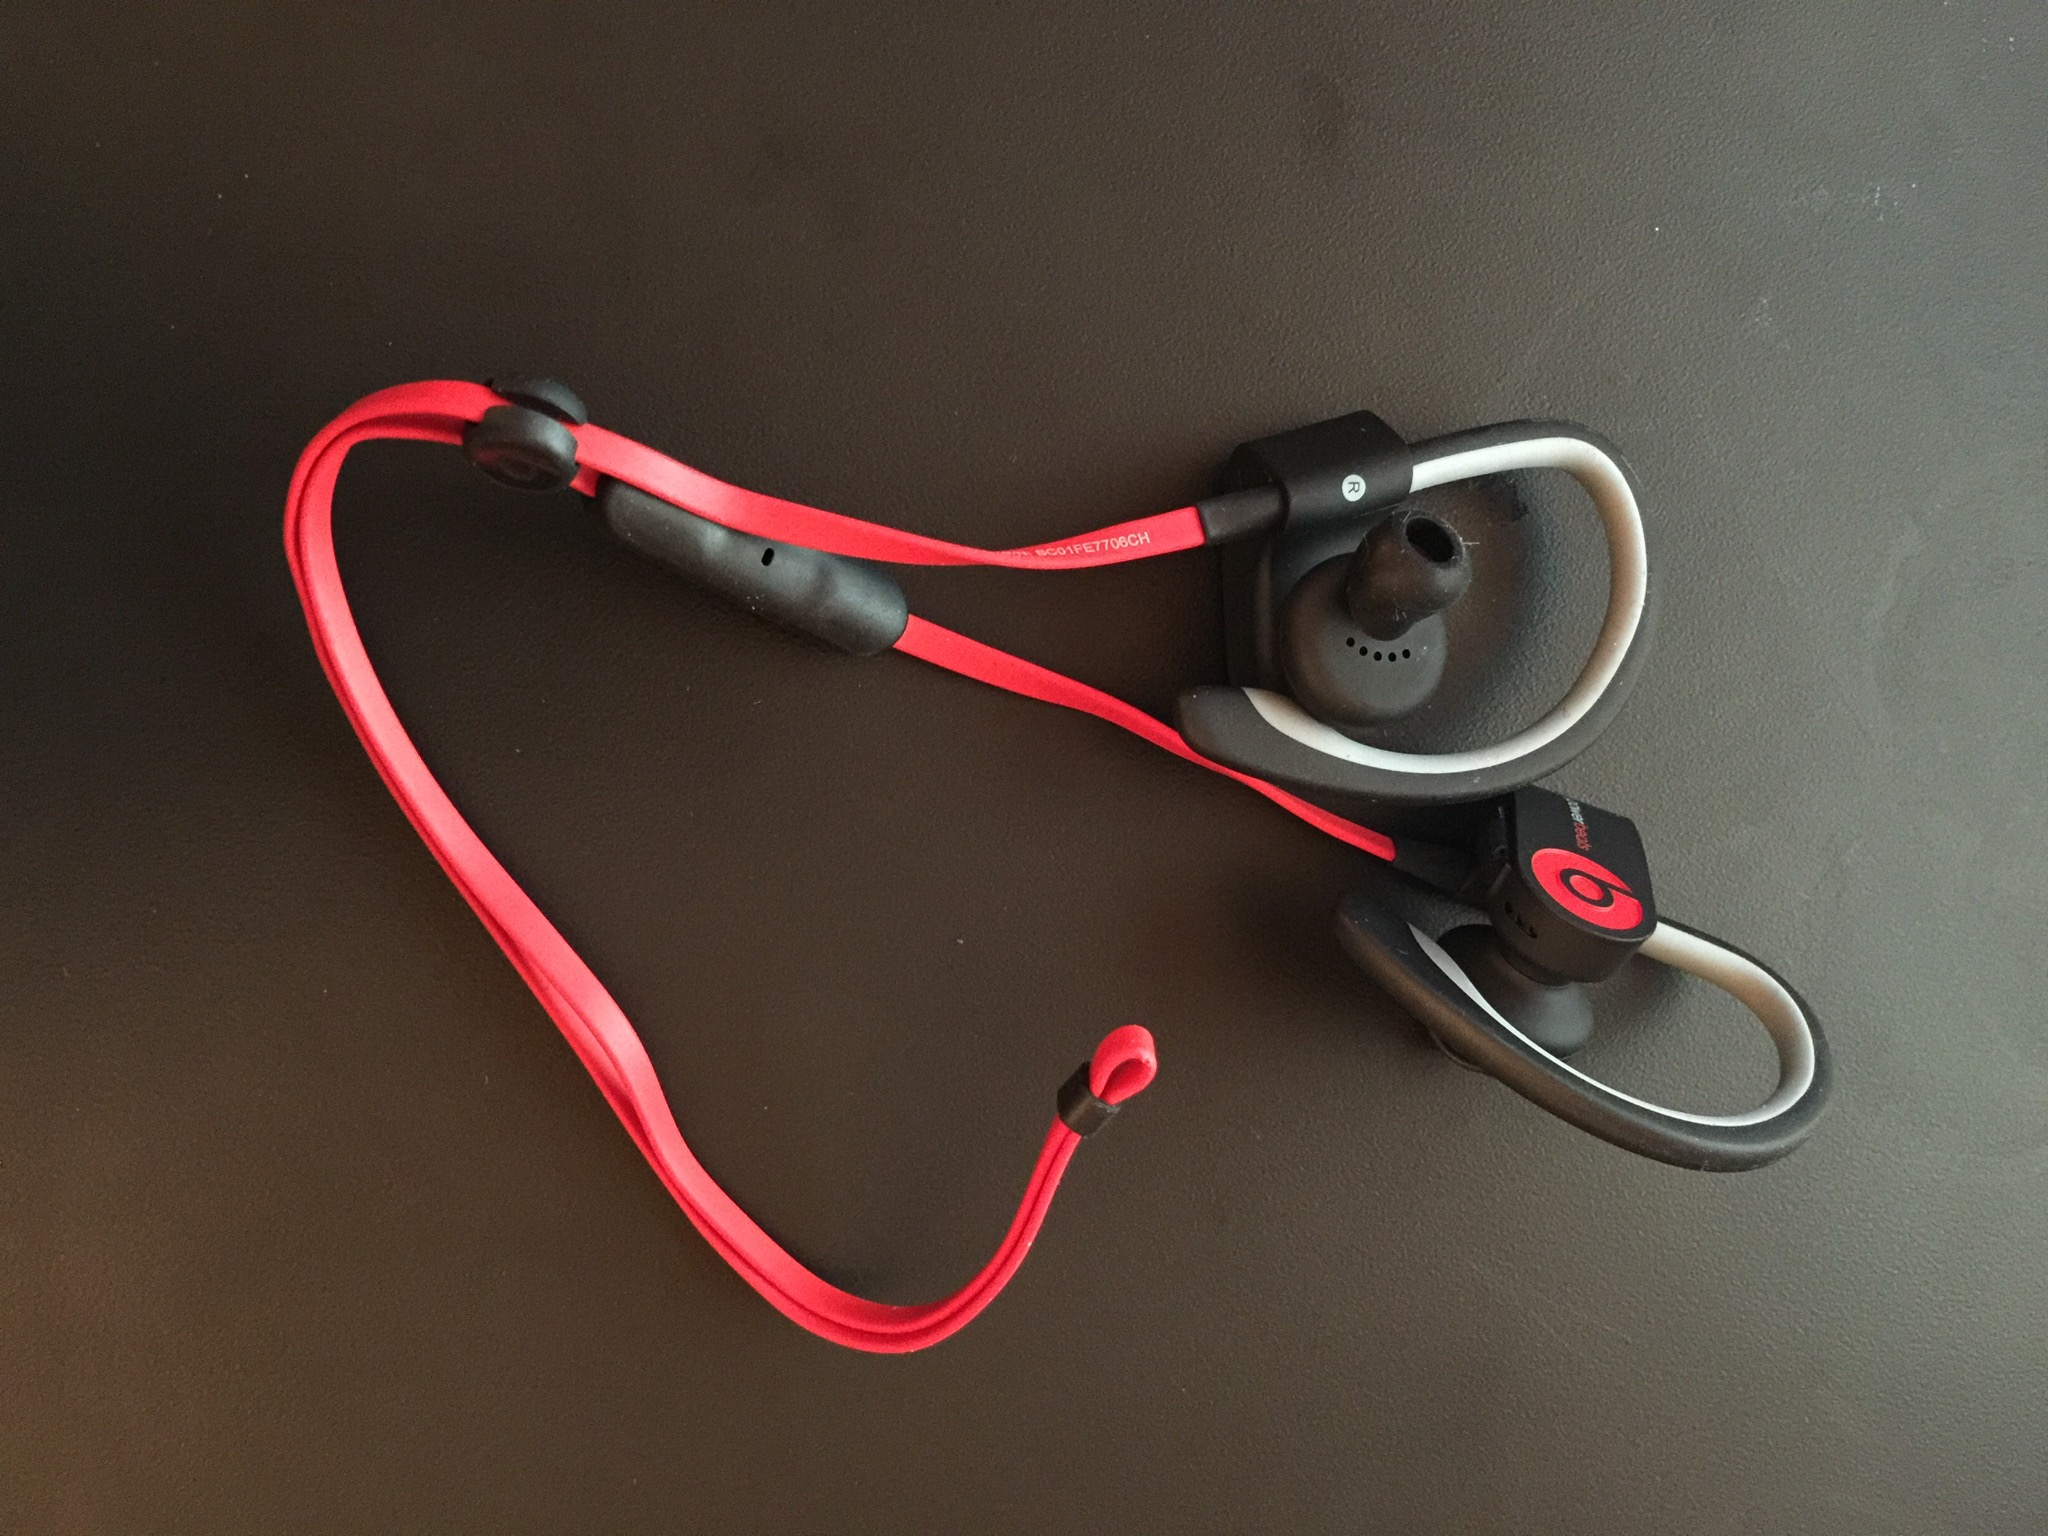 Powerbeats 2 Wireless earbuds